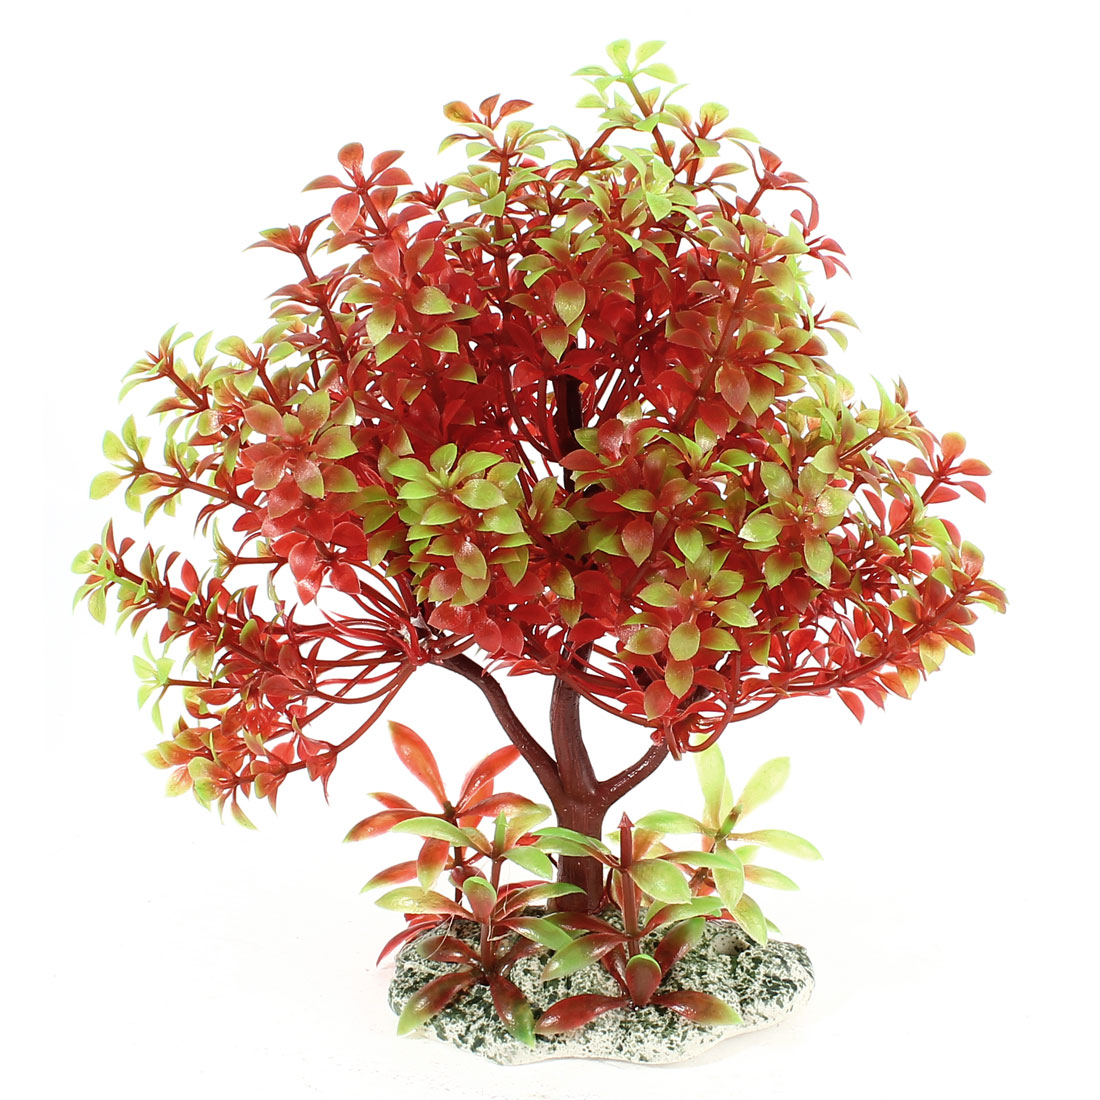 Aquarium Fish Tank Emulational Red Green Tree Shaped Water Plant Grass Decor 18cm Height w Ceramic Base